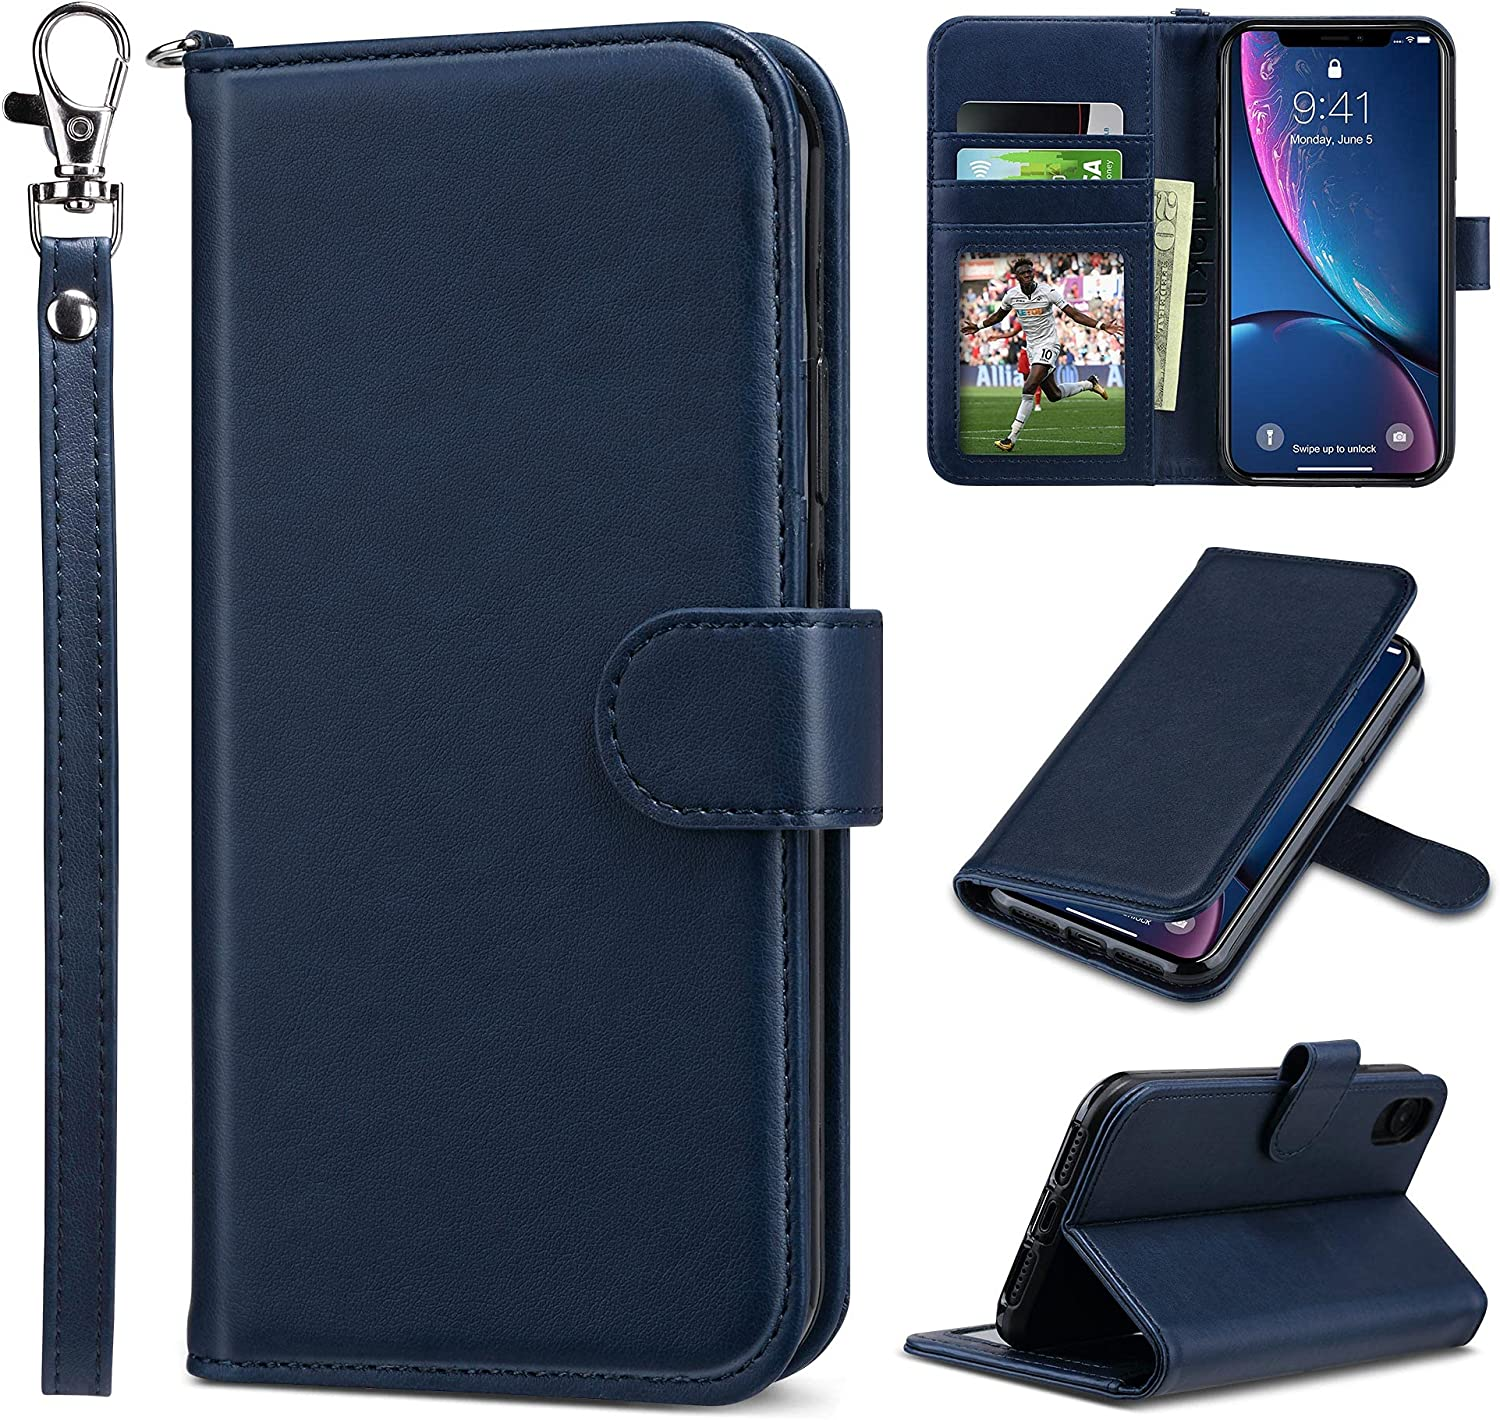 ULAK iPhone XR Wallet Case, Premium PU Leather Flip Folio Case with Card Holders Kickstand Hand Strap Shockproof Protective Cover for iPhone XR 6.1 inch (Blue)